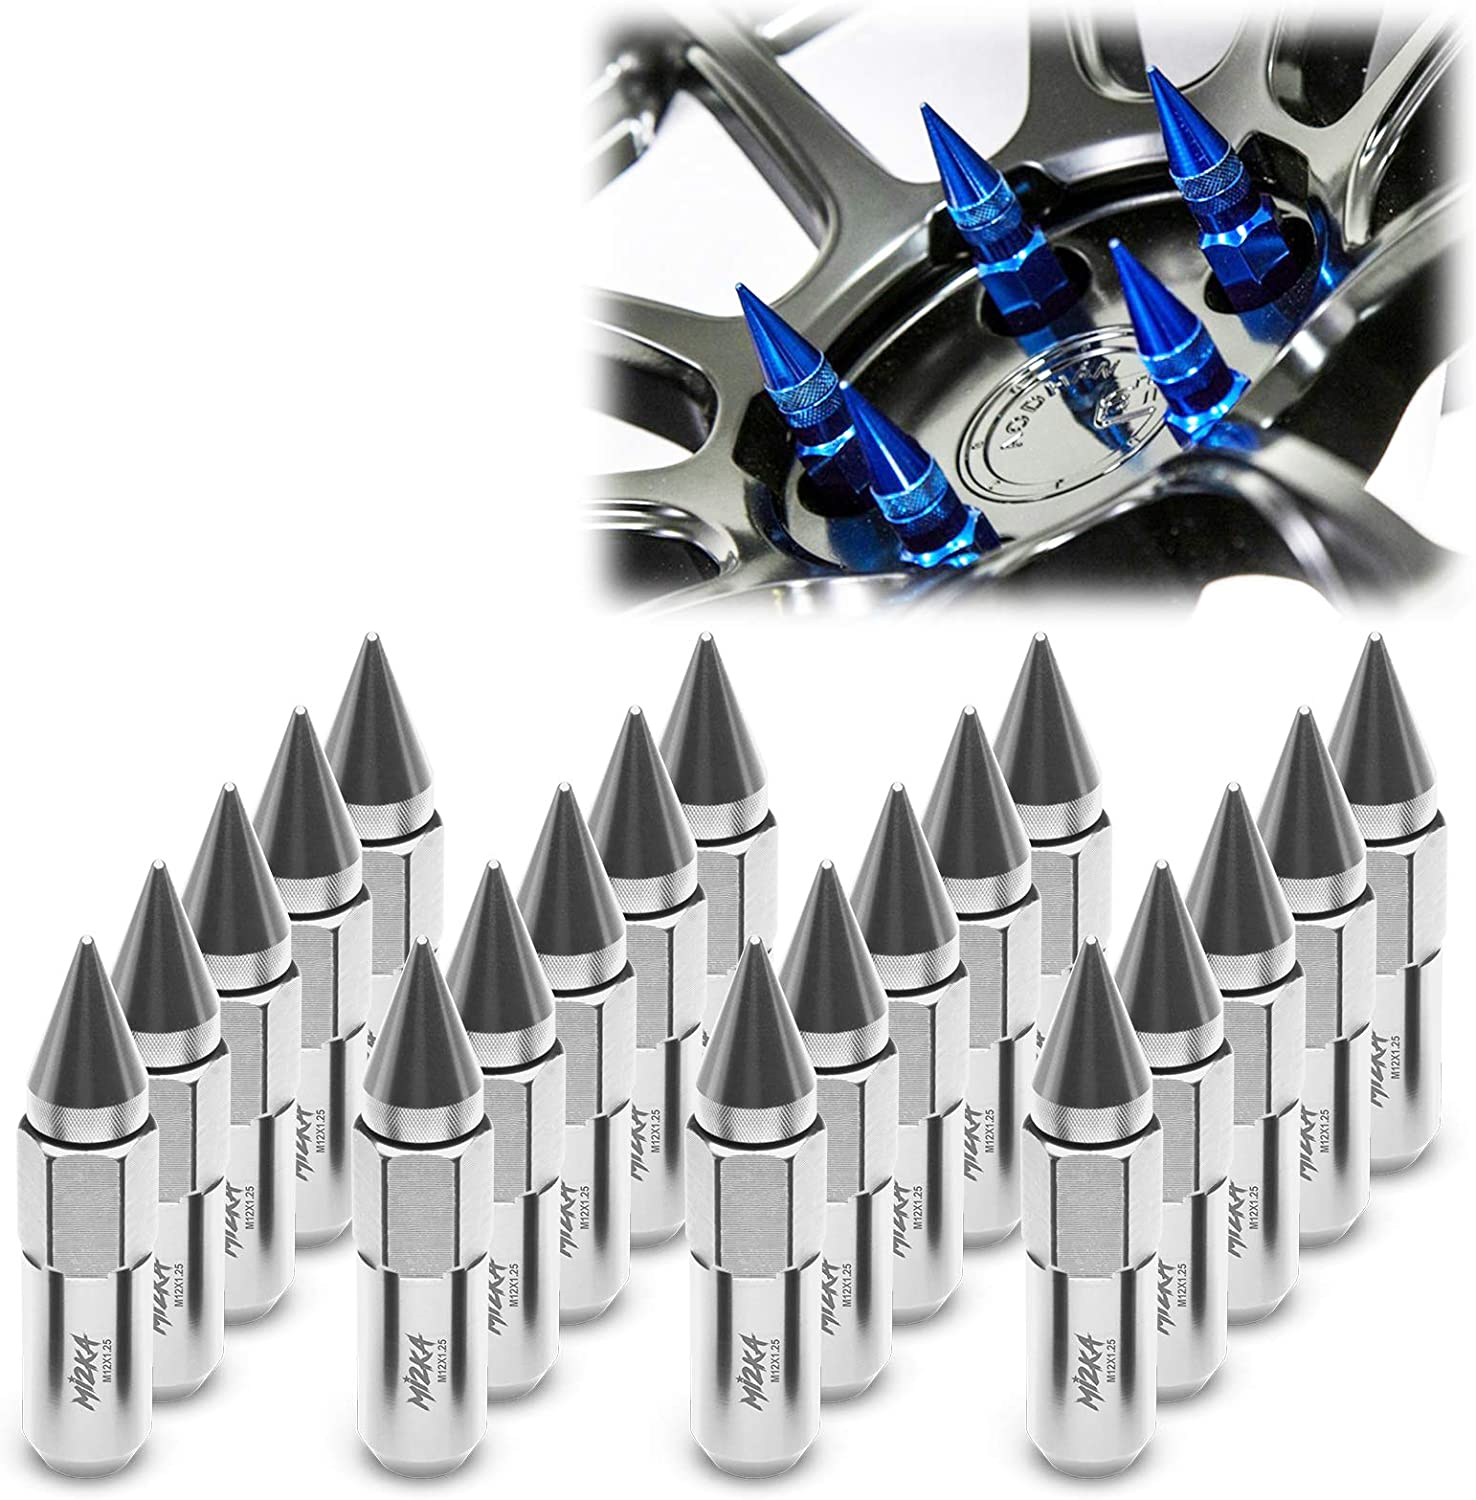 EzAuto Wrap Silver 20 PCS M12x1.25 Nuts Lug Direct Sale sale of manufacturer Extended Spiked 60mm